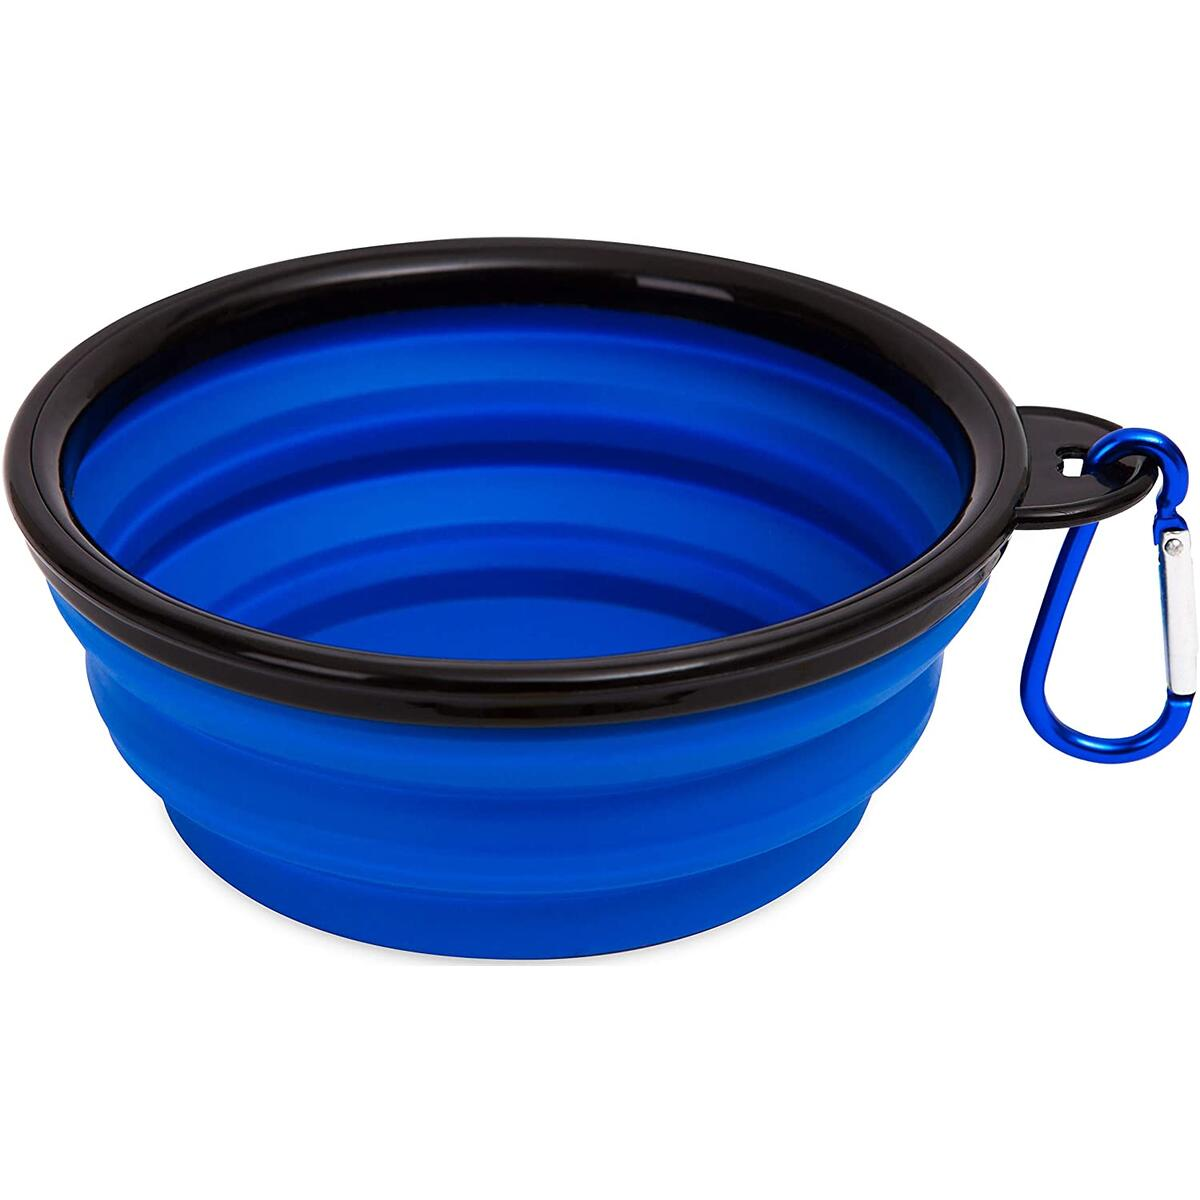 Dog Feeder Eating Bowl all colors - blue, green, red, pink, yellow